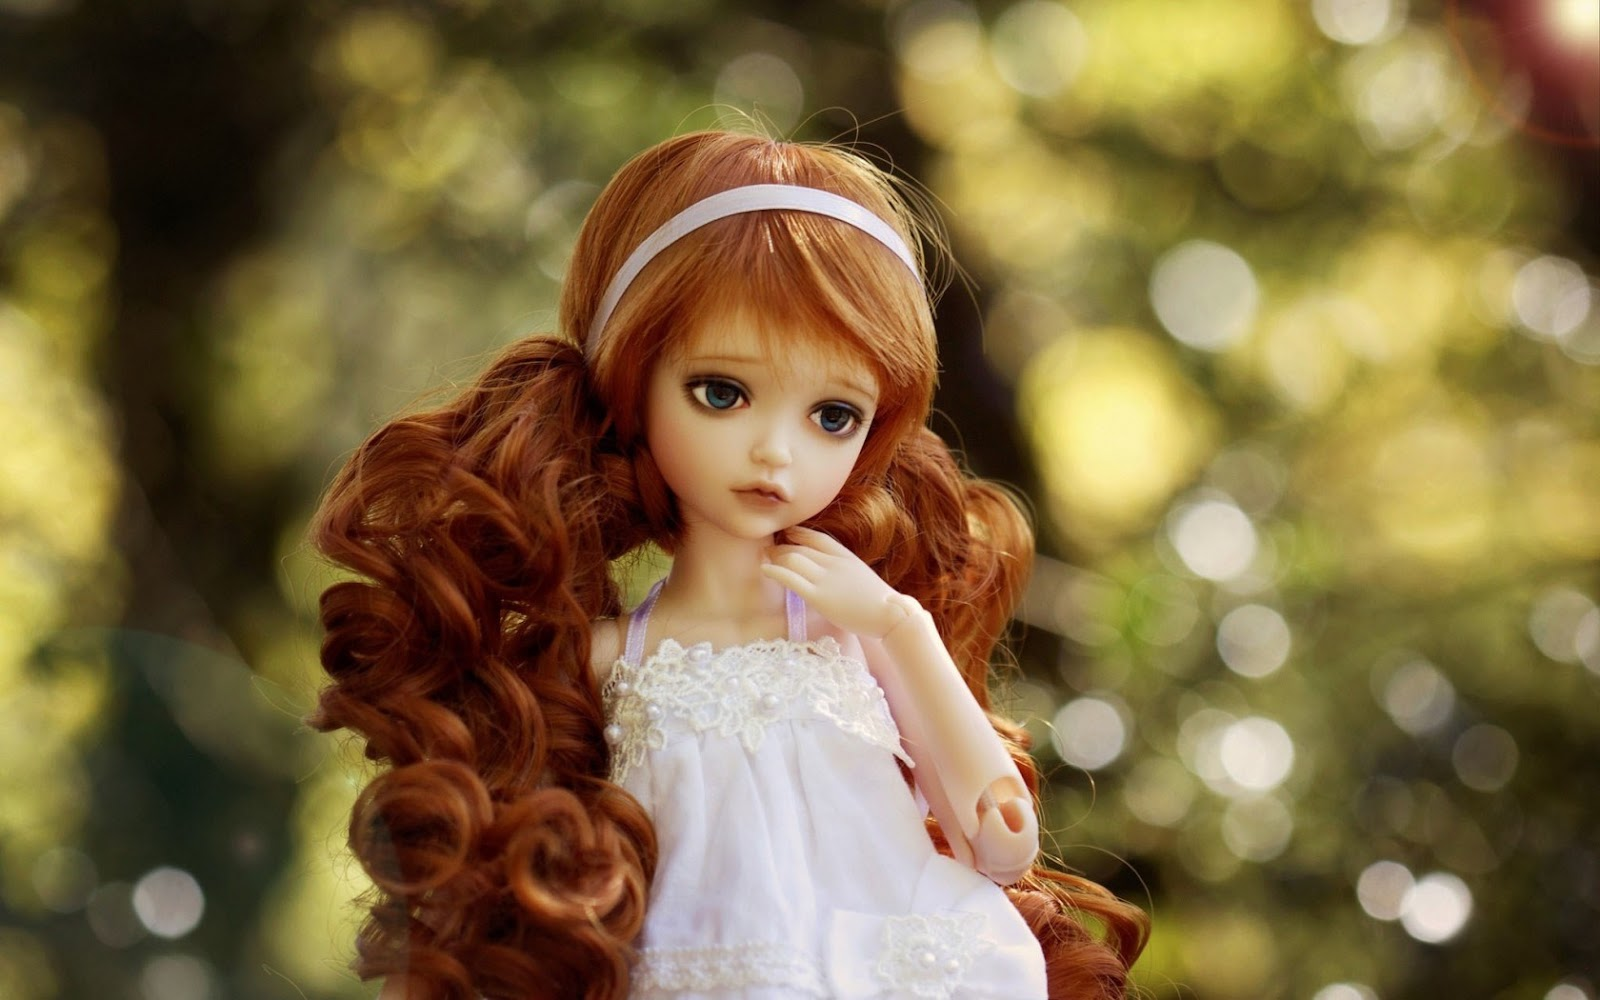 Hd wallpaper doll - Barbie Dolls Girl Hd Wallpapers Whatsapp Dp And Fb Profiel Images